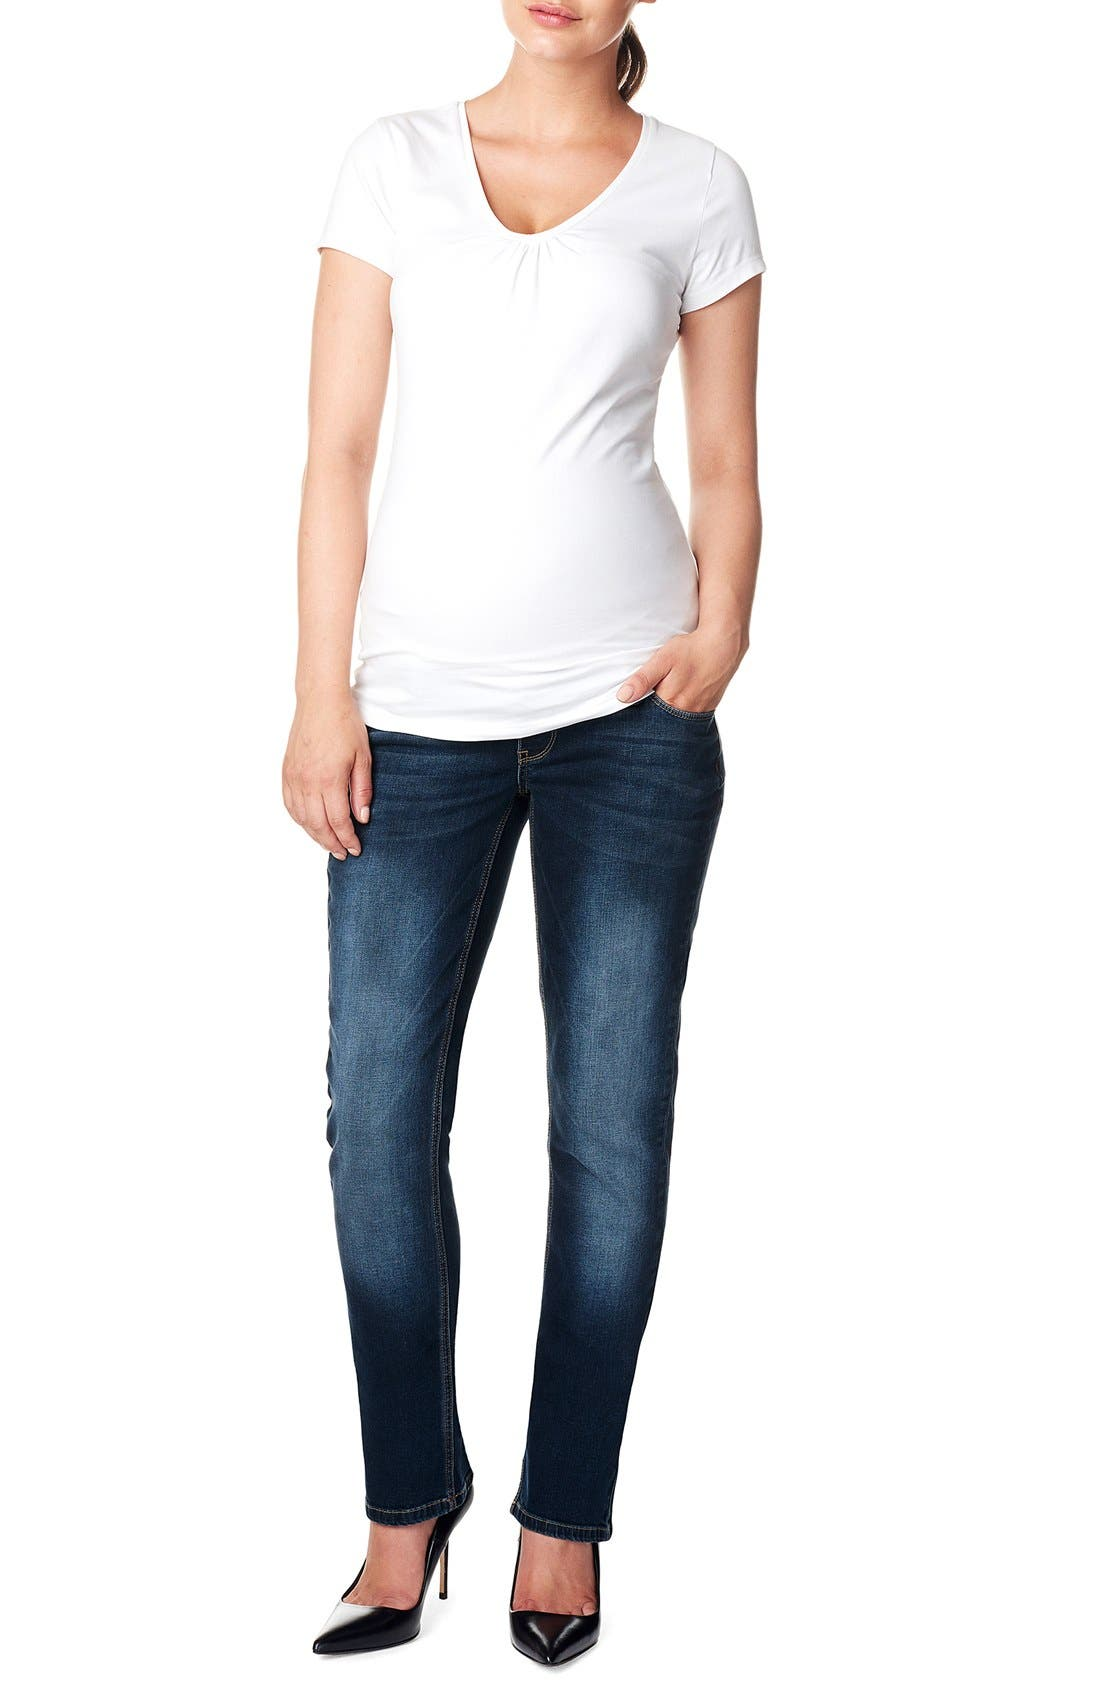 'Mena Comfort' Over the Belly Straight Leg Maternity Jeans,                         Main,                         color, DARK STONE WASH